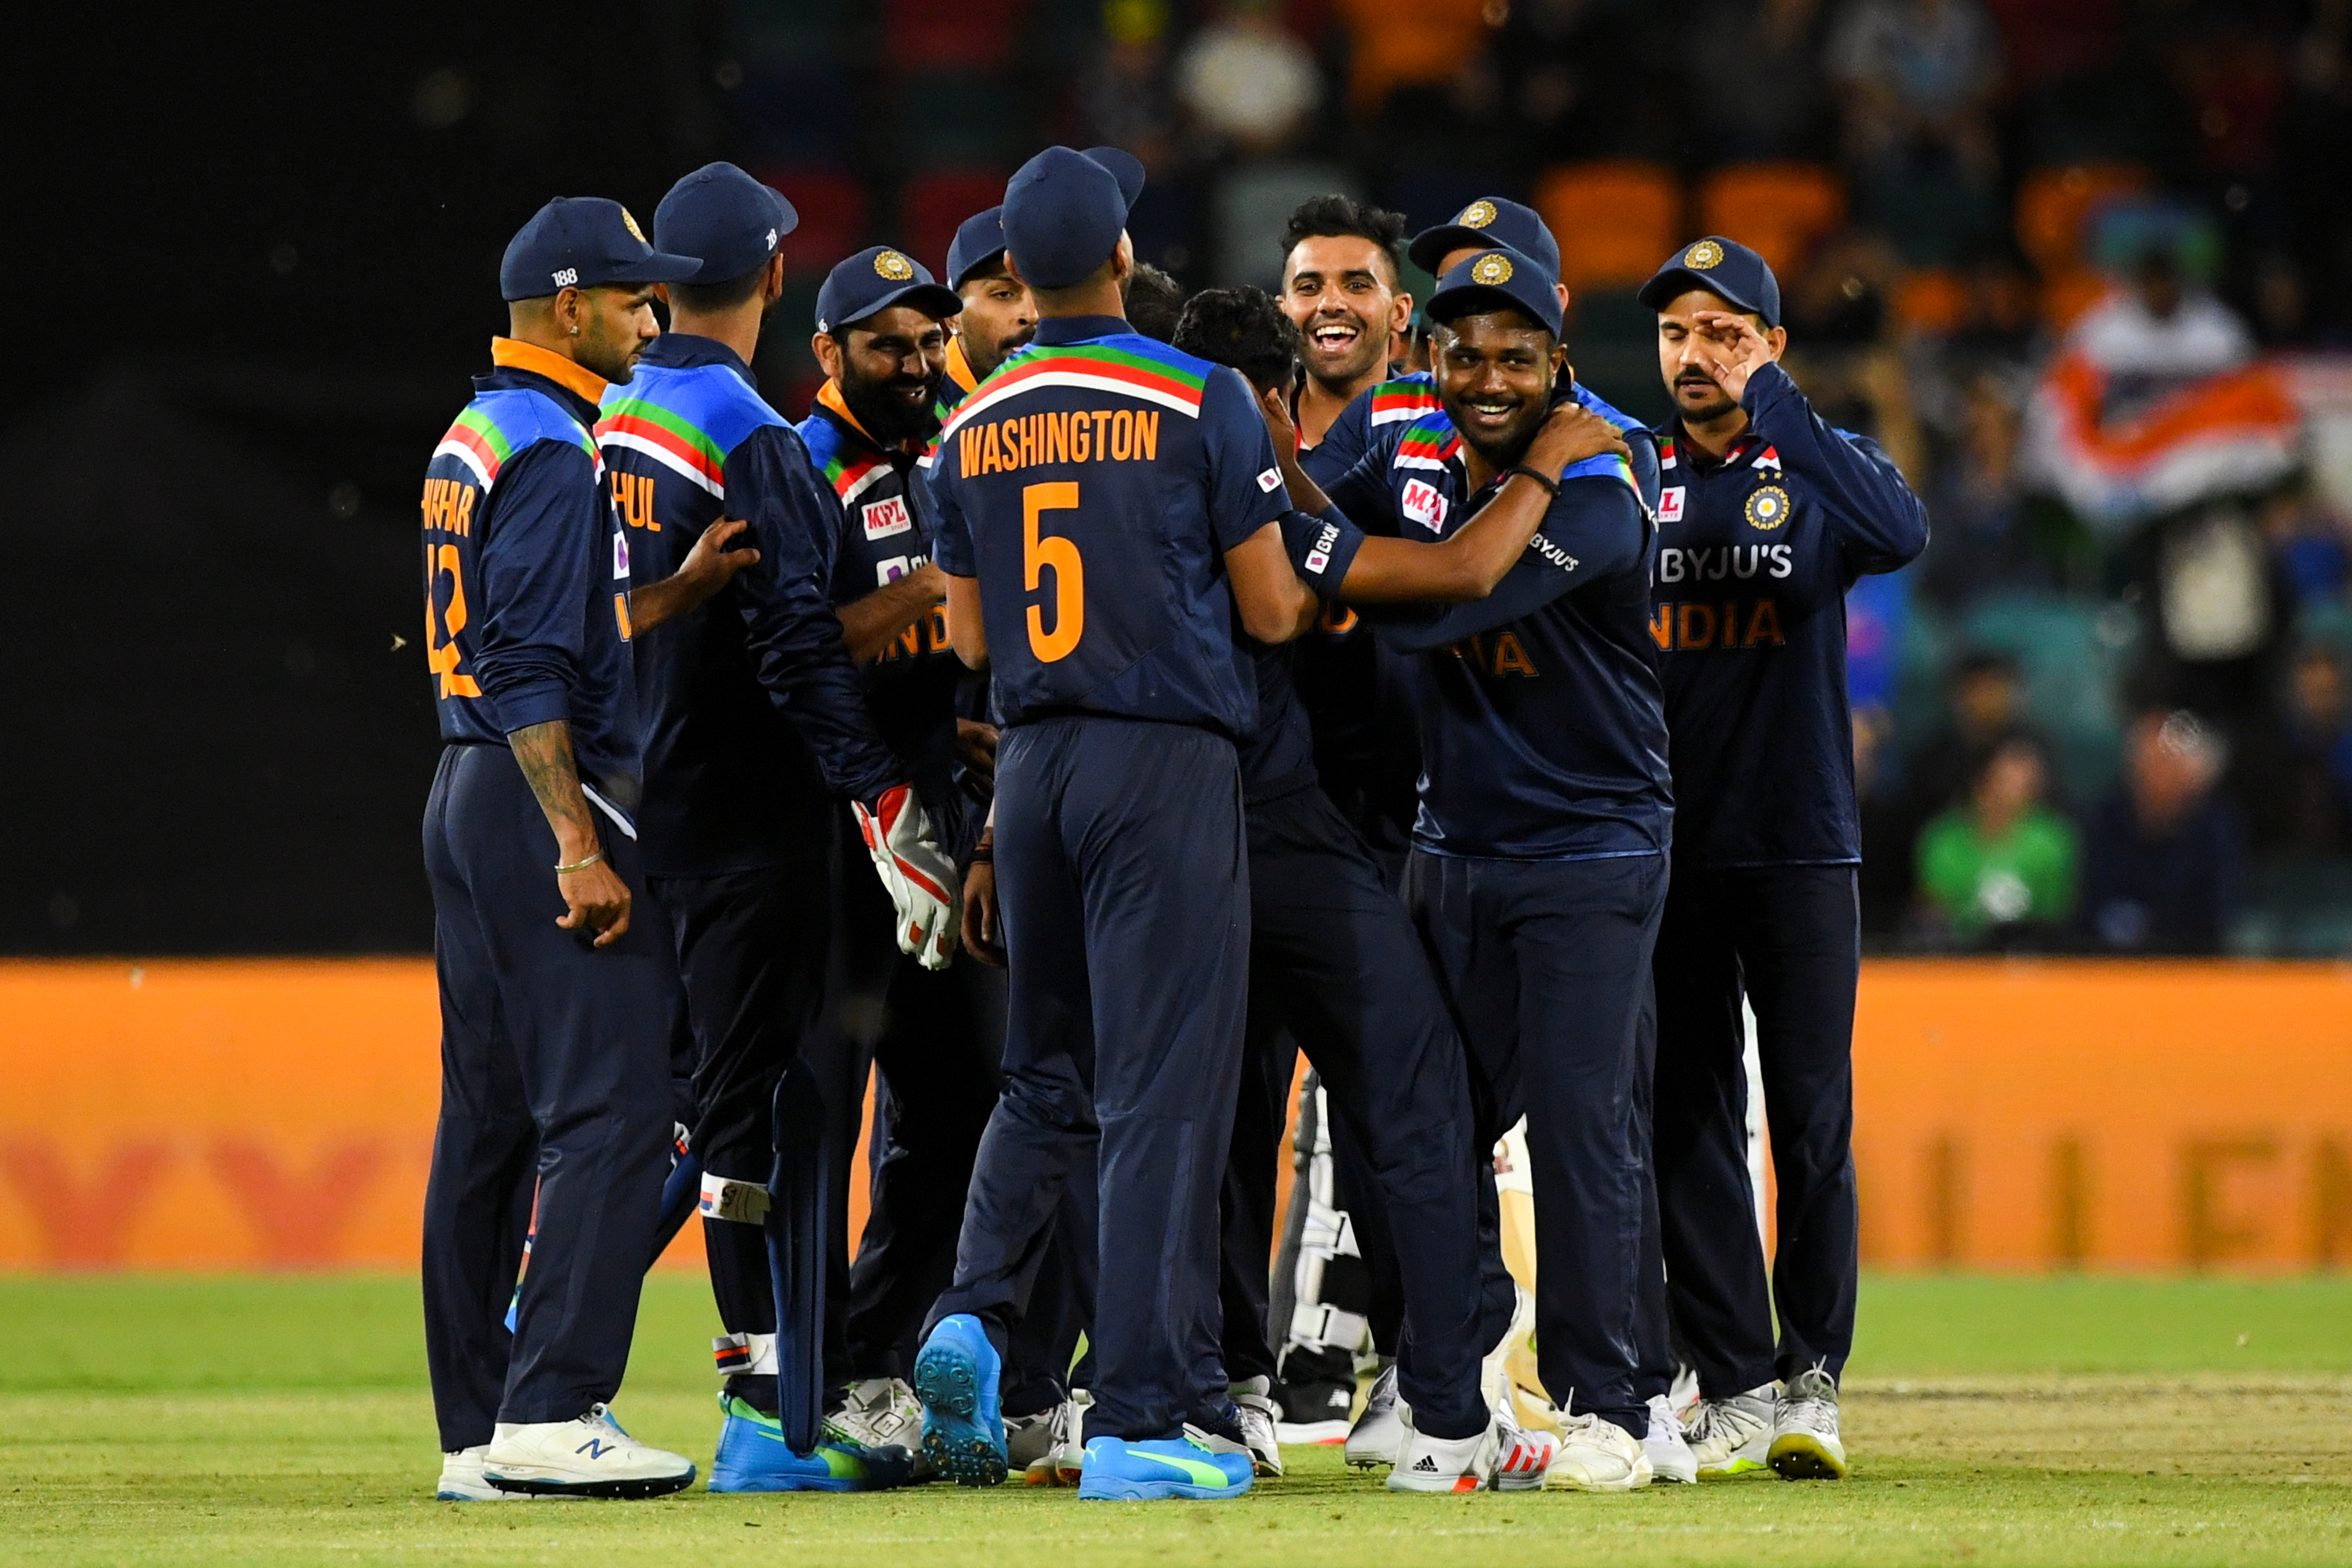 The Indian team celebrates the wicket of Glenn Maxwell of Australia during the first T20 cricket match between Australia and India at Manuka Oval in Canberra, Australia, December 4, 2020. Photo: Reuters